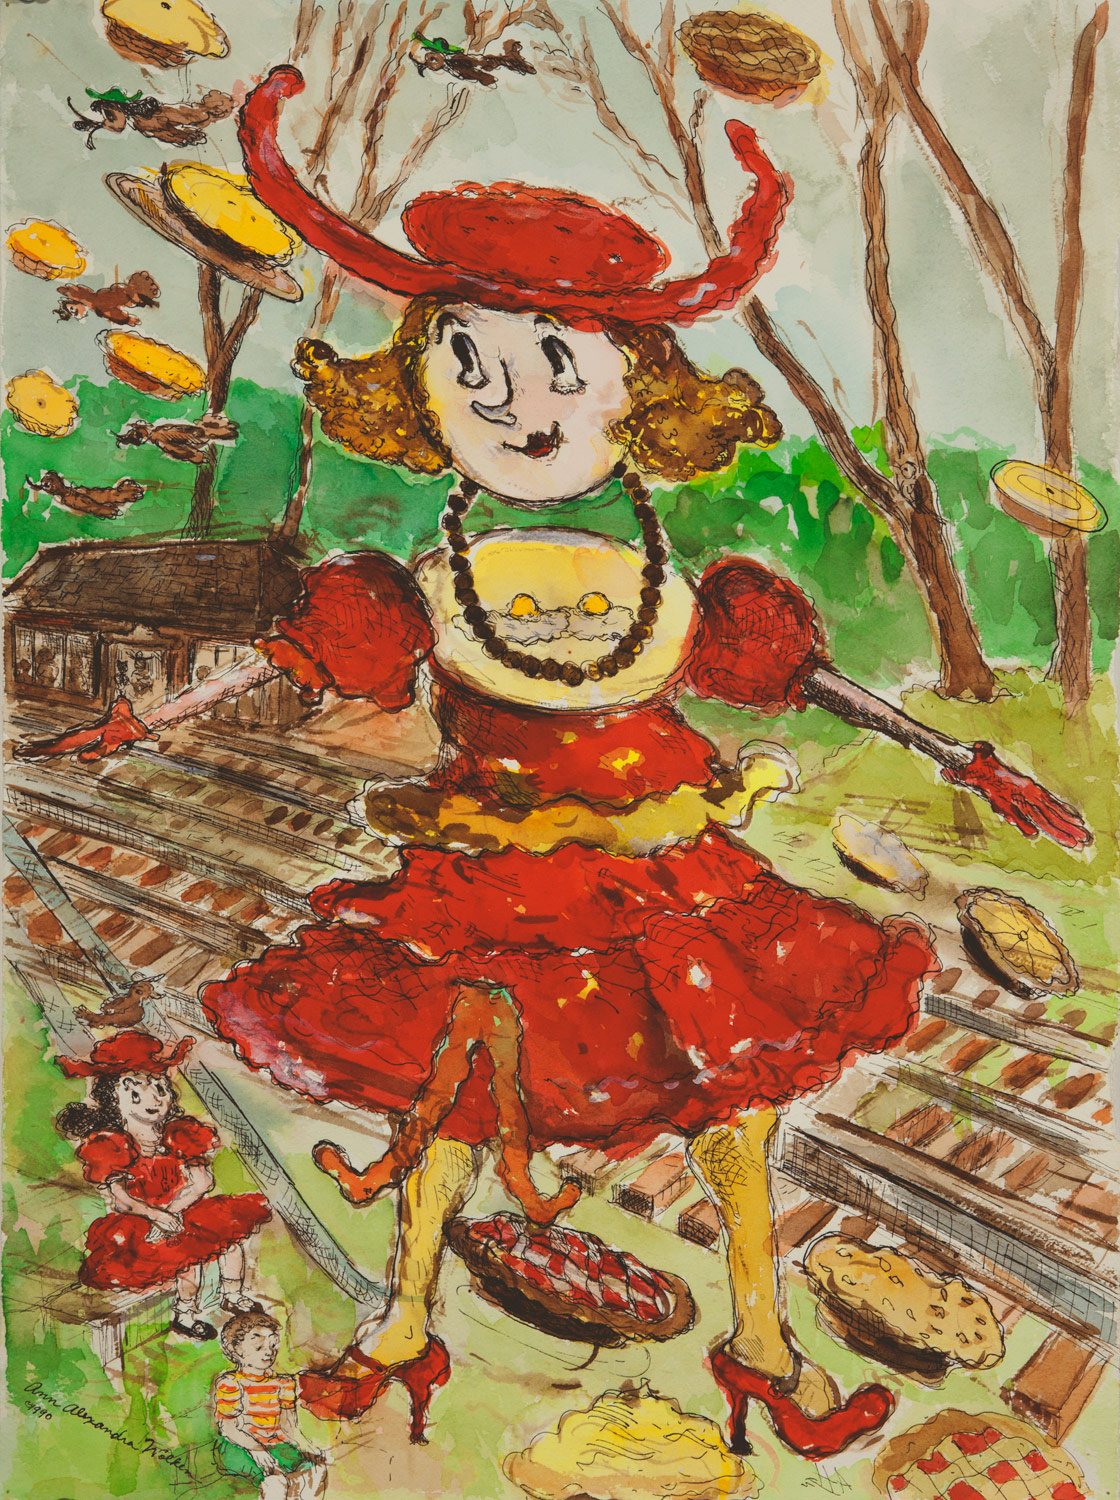 Dodie at the Railroad with Pies